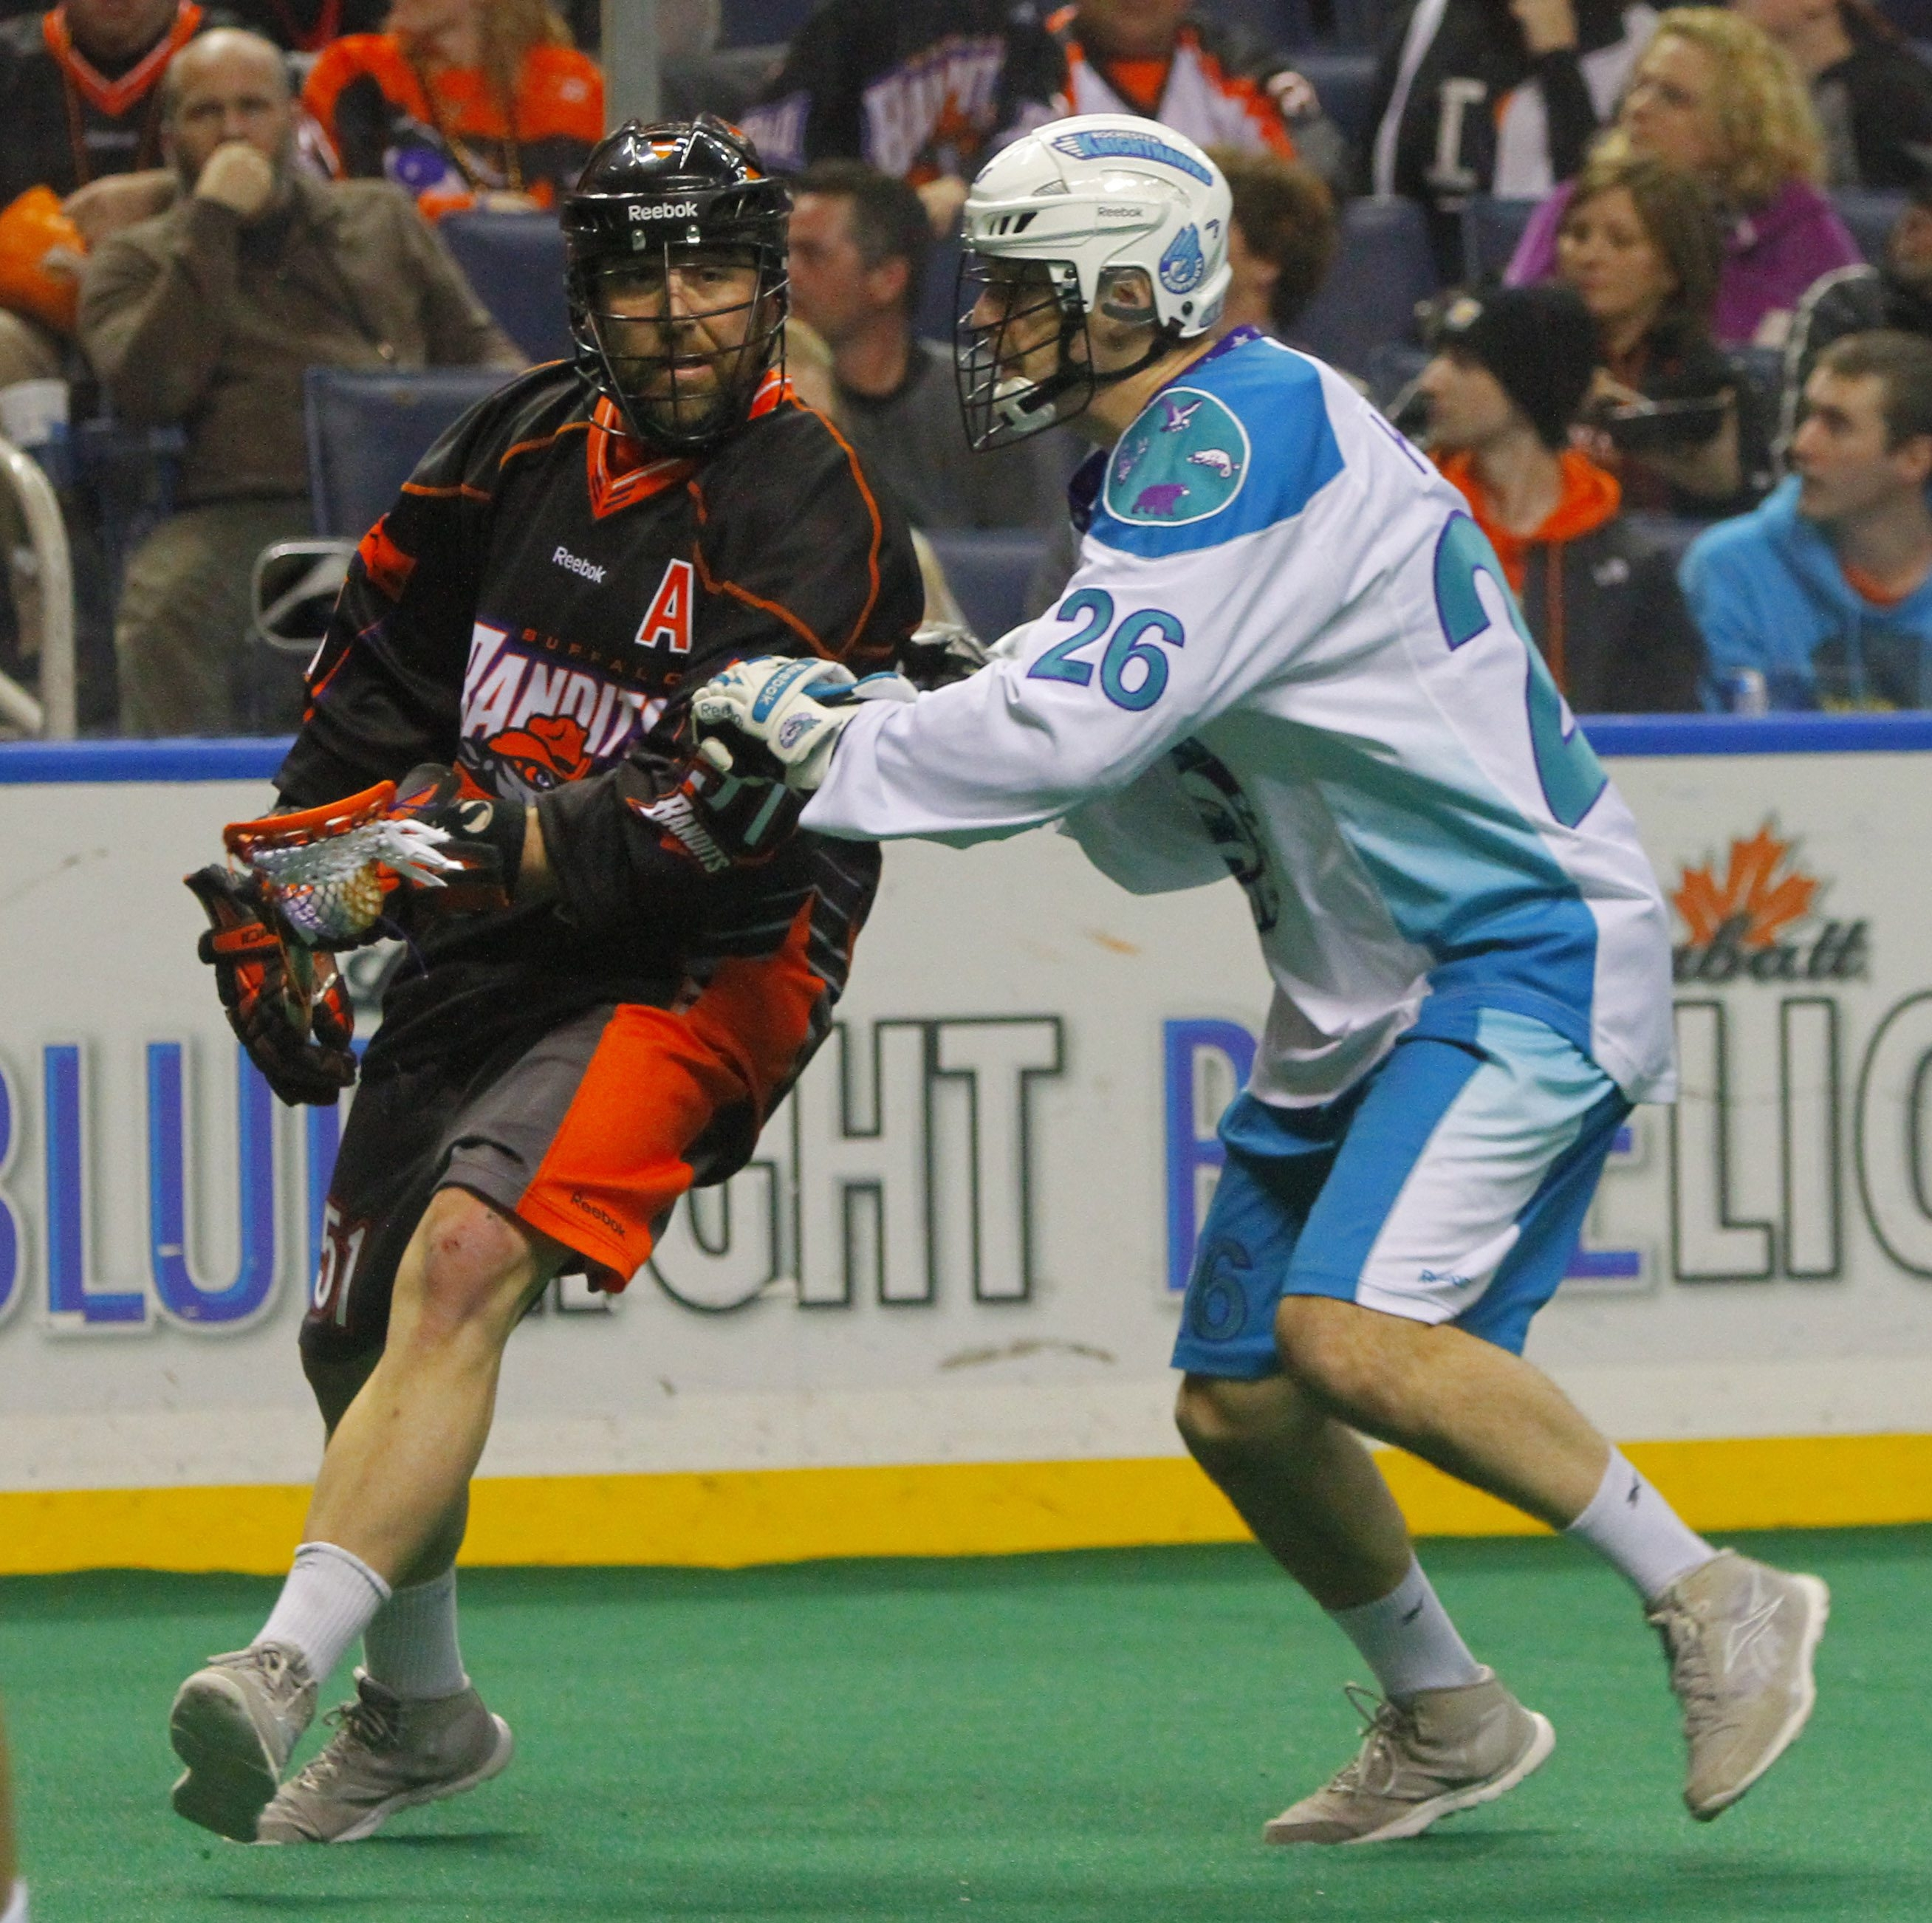 The Bandits' Shawn Williams presses in as Rochester's Mike Kirk defends during Saturday night's game.